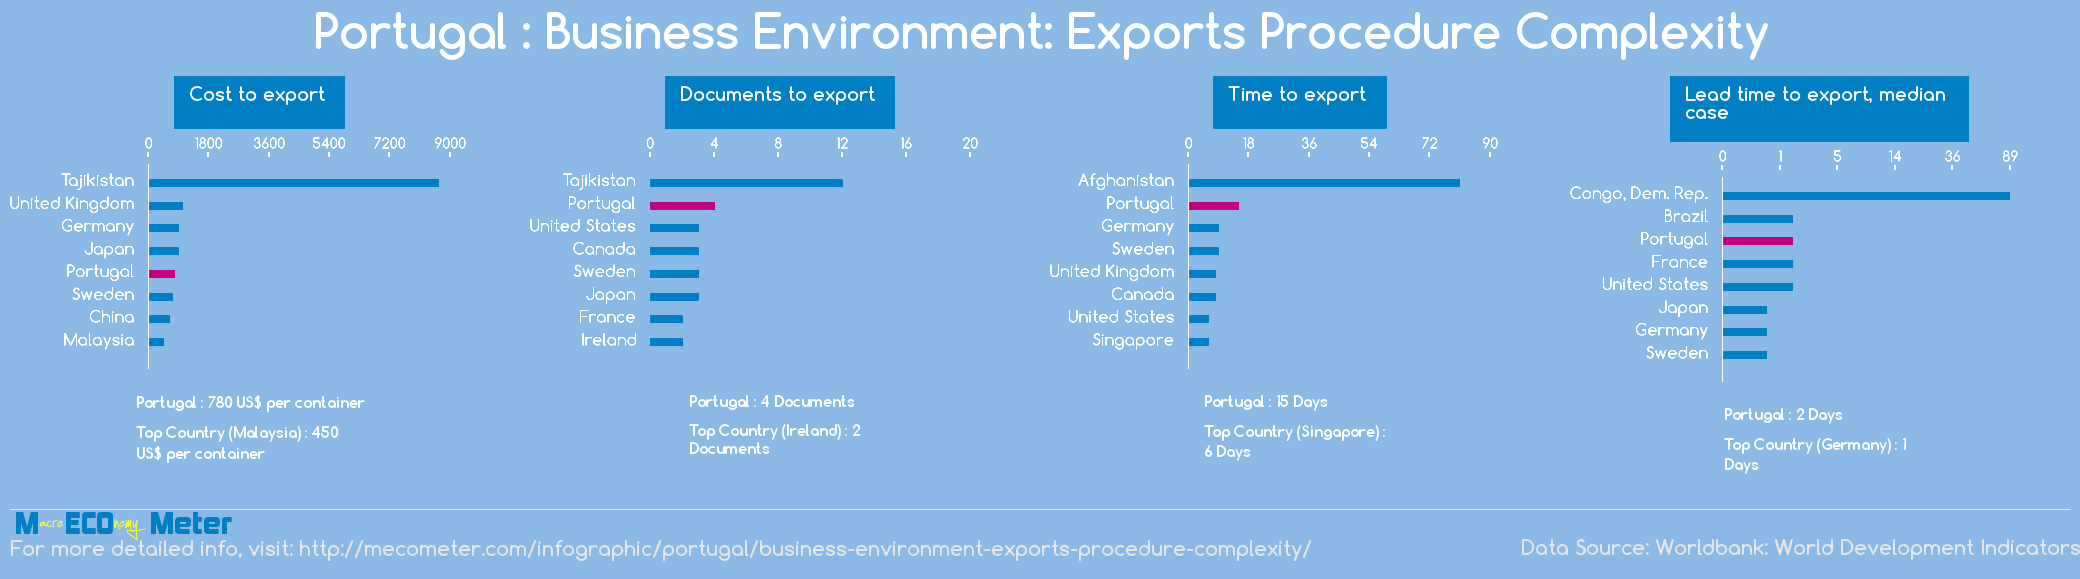 Portugal : Business Environment: Exports Procedure Complexity